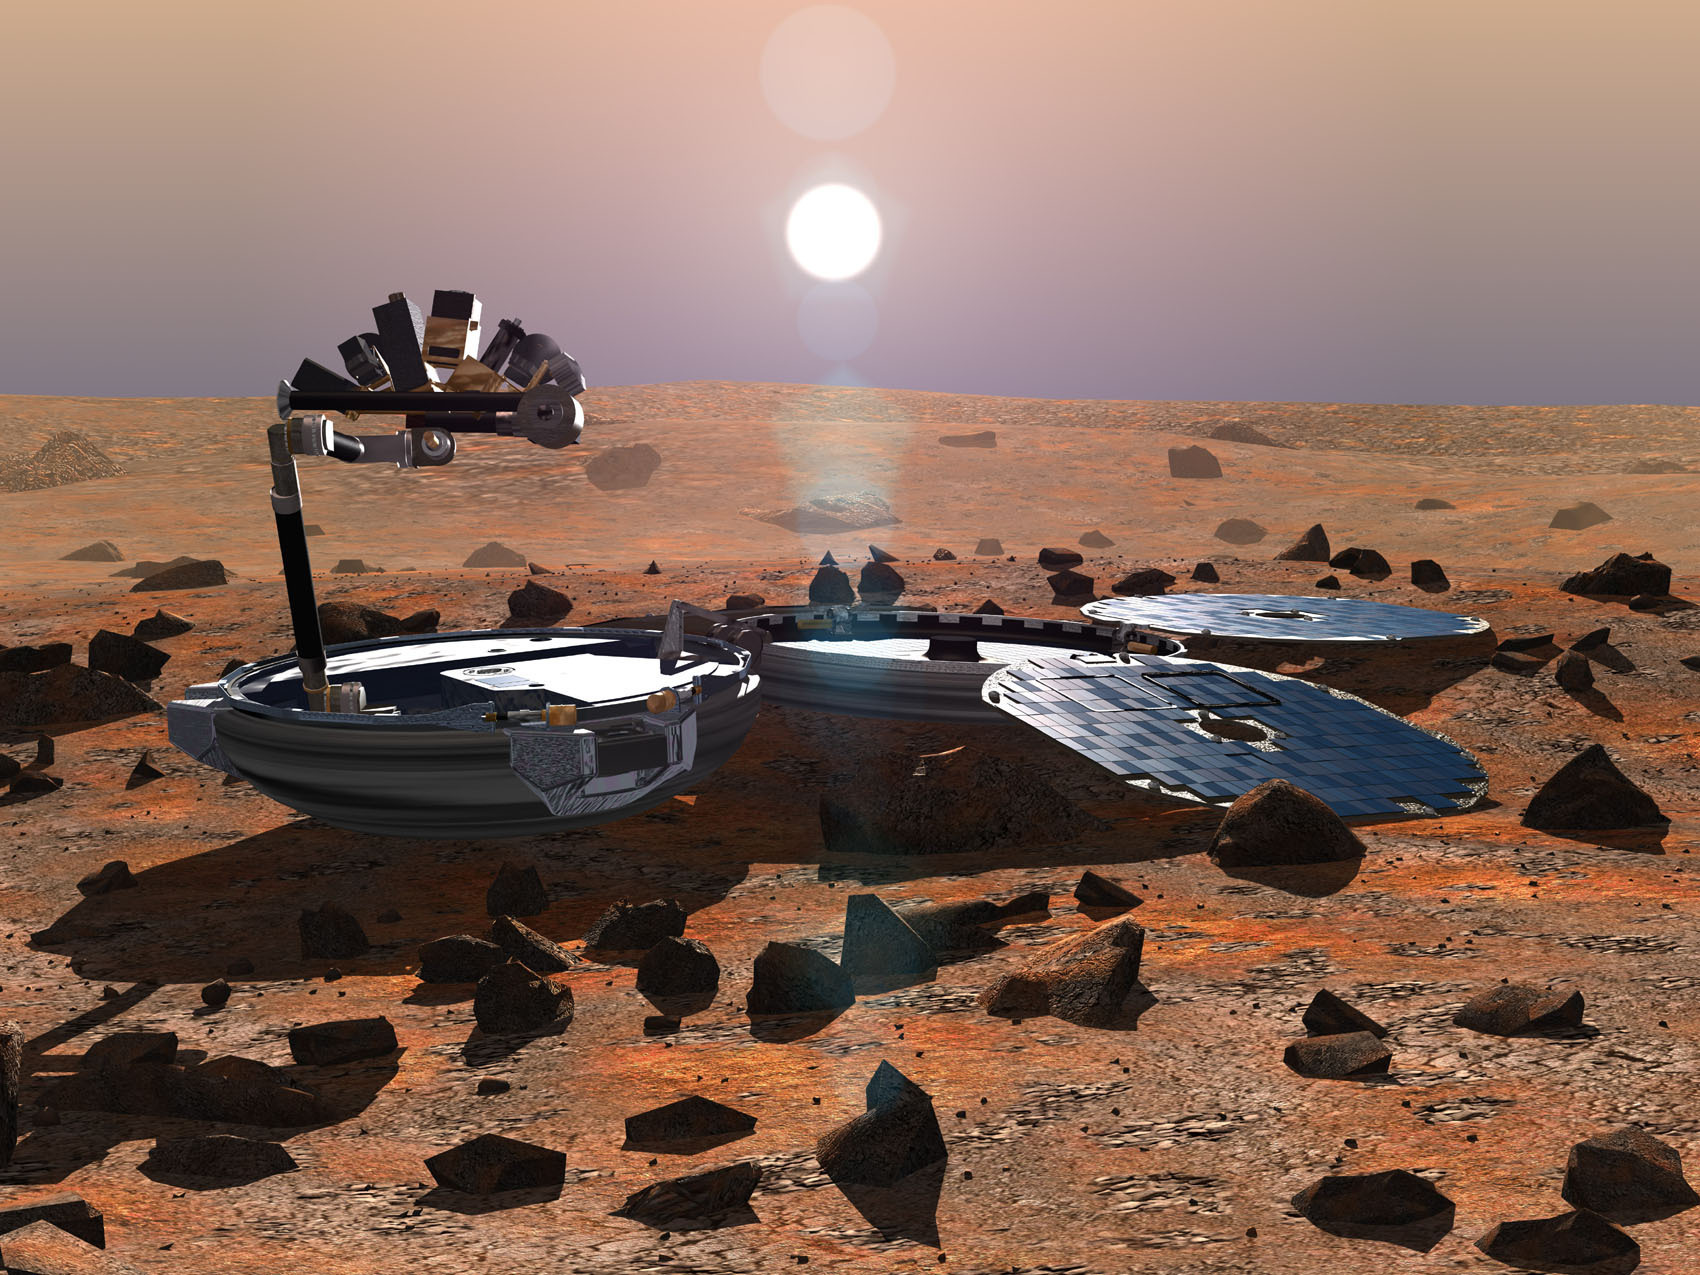 A 2002 impression of how the Beagle 2 landing craft might have looked once landed on Mars.